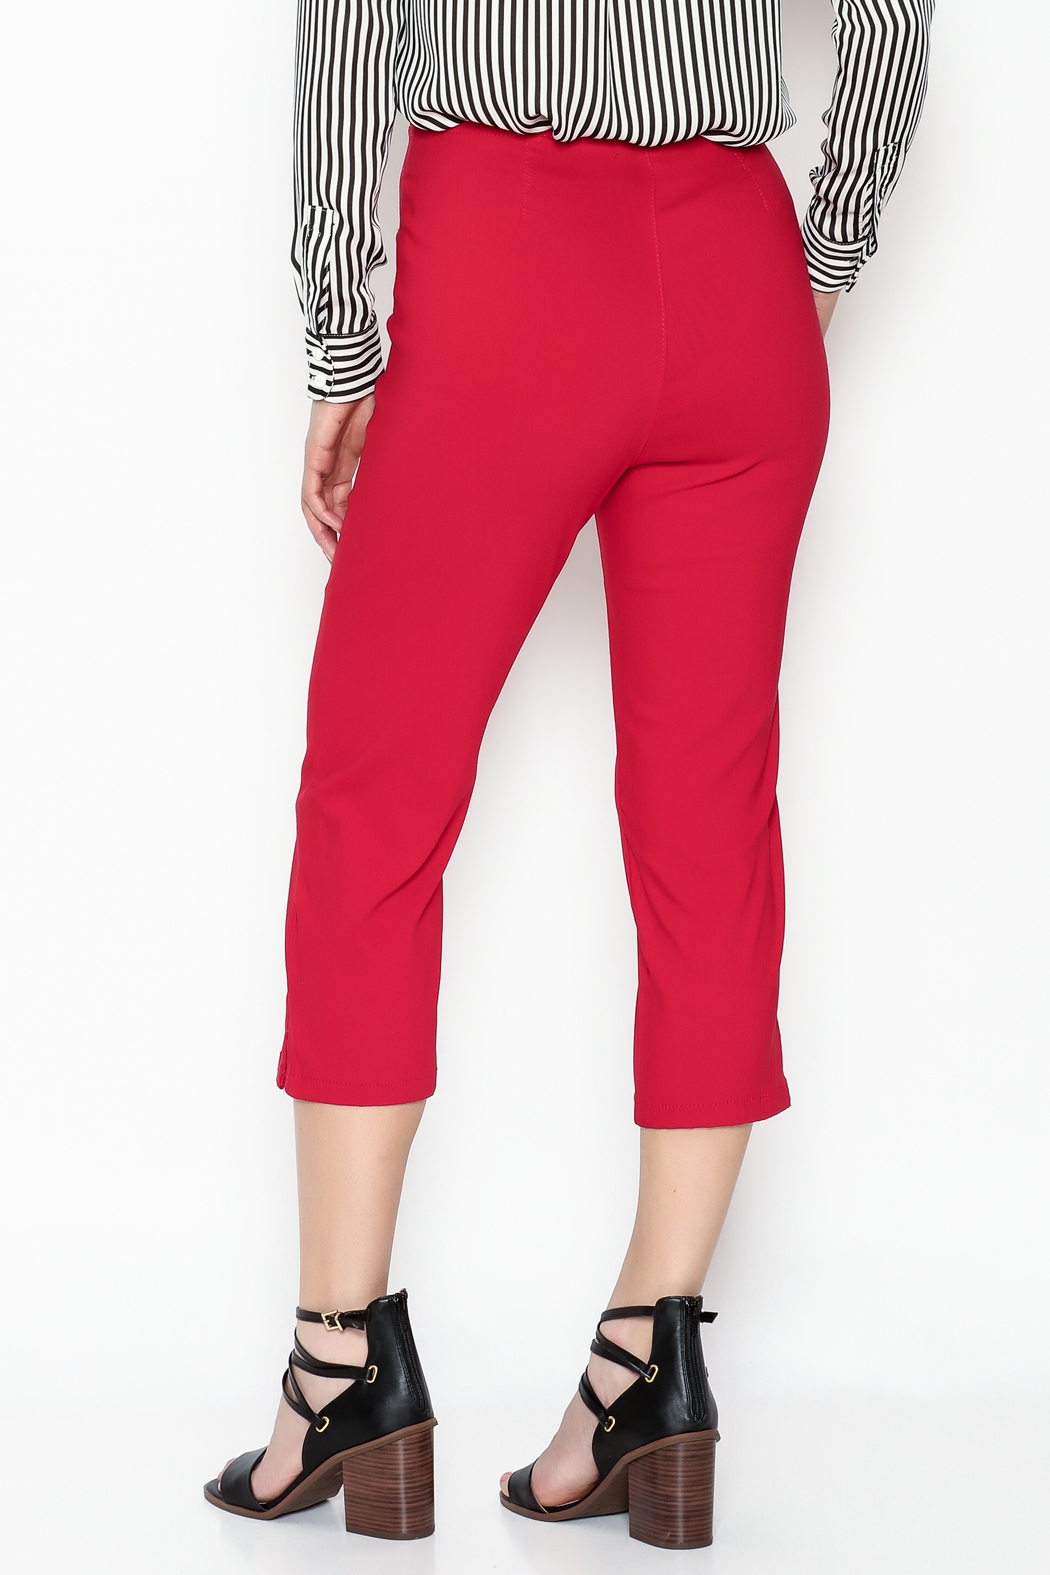 French Dressing Jeans Red Stretch Capri - Back Cropped Image